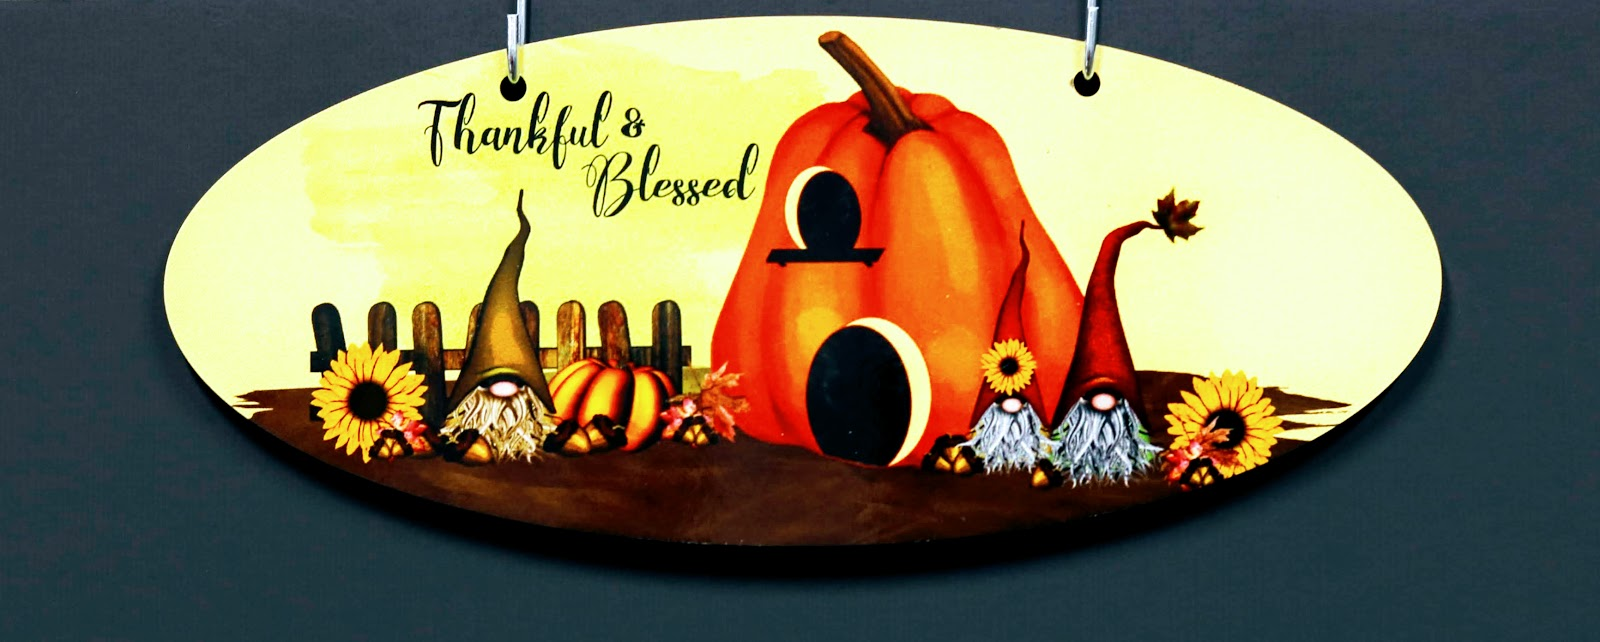 Thankful and Blessed Season Sign